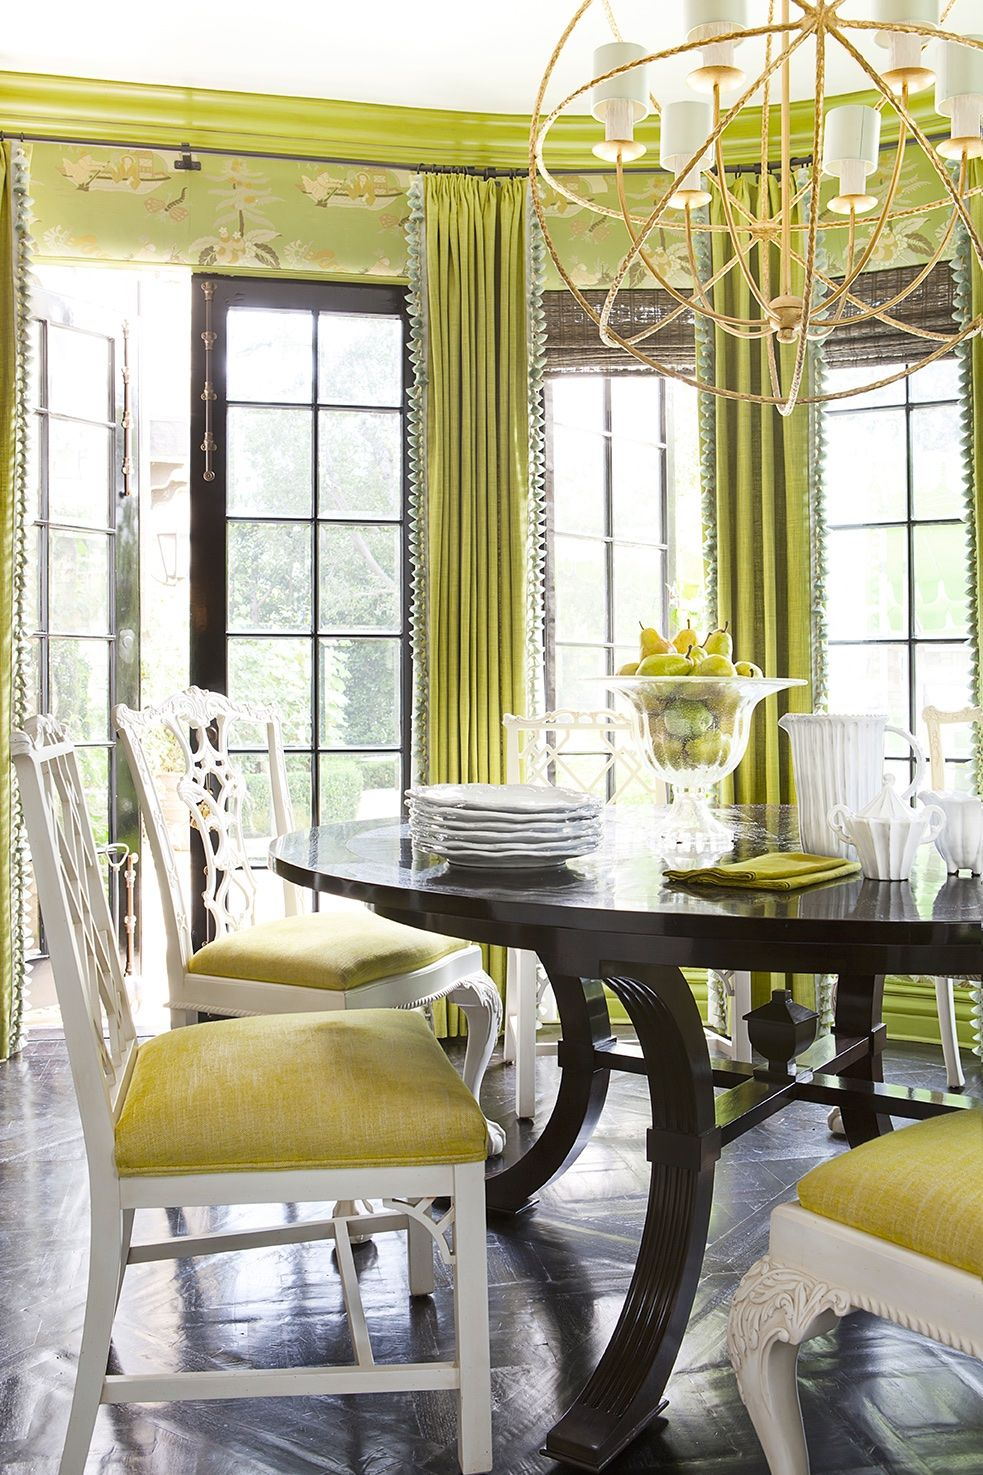 30 Vibrant Room Colors to Brighten Up Your Home   Room, Green rooms ...